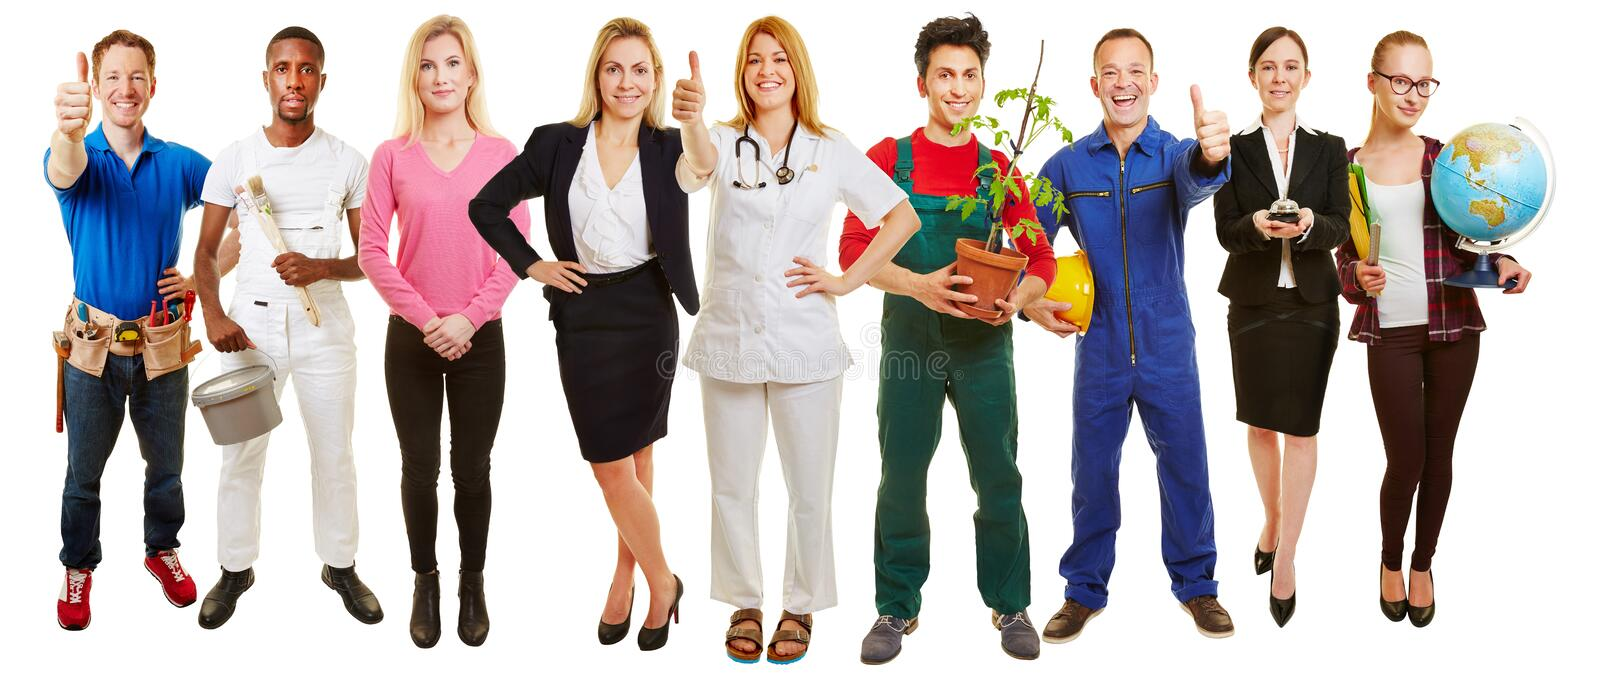 Successful group of many occupations royalty free stock image